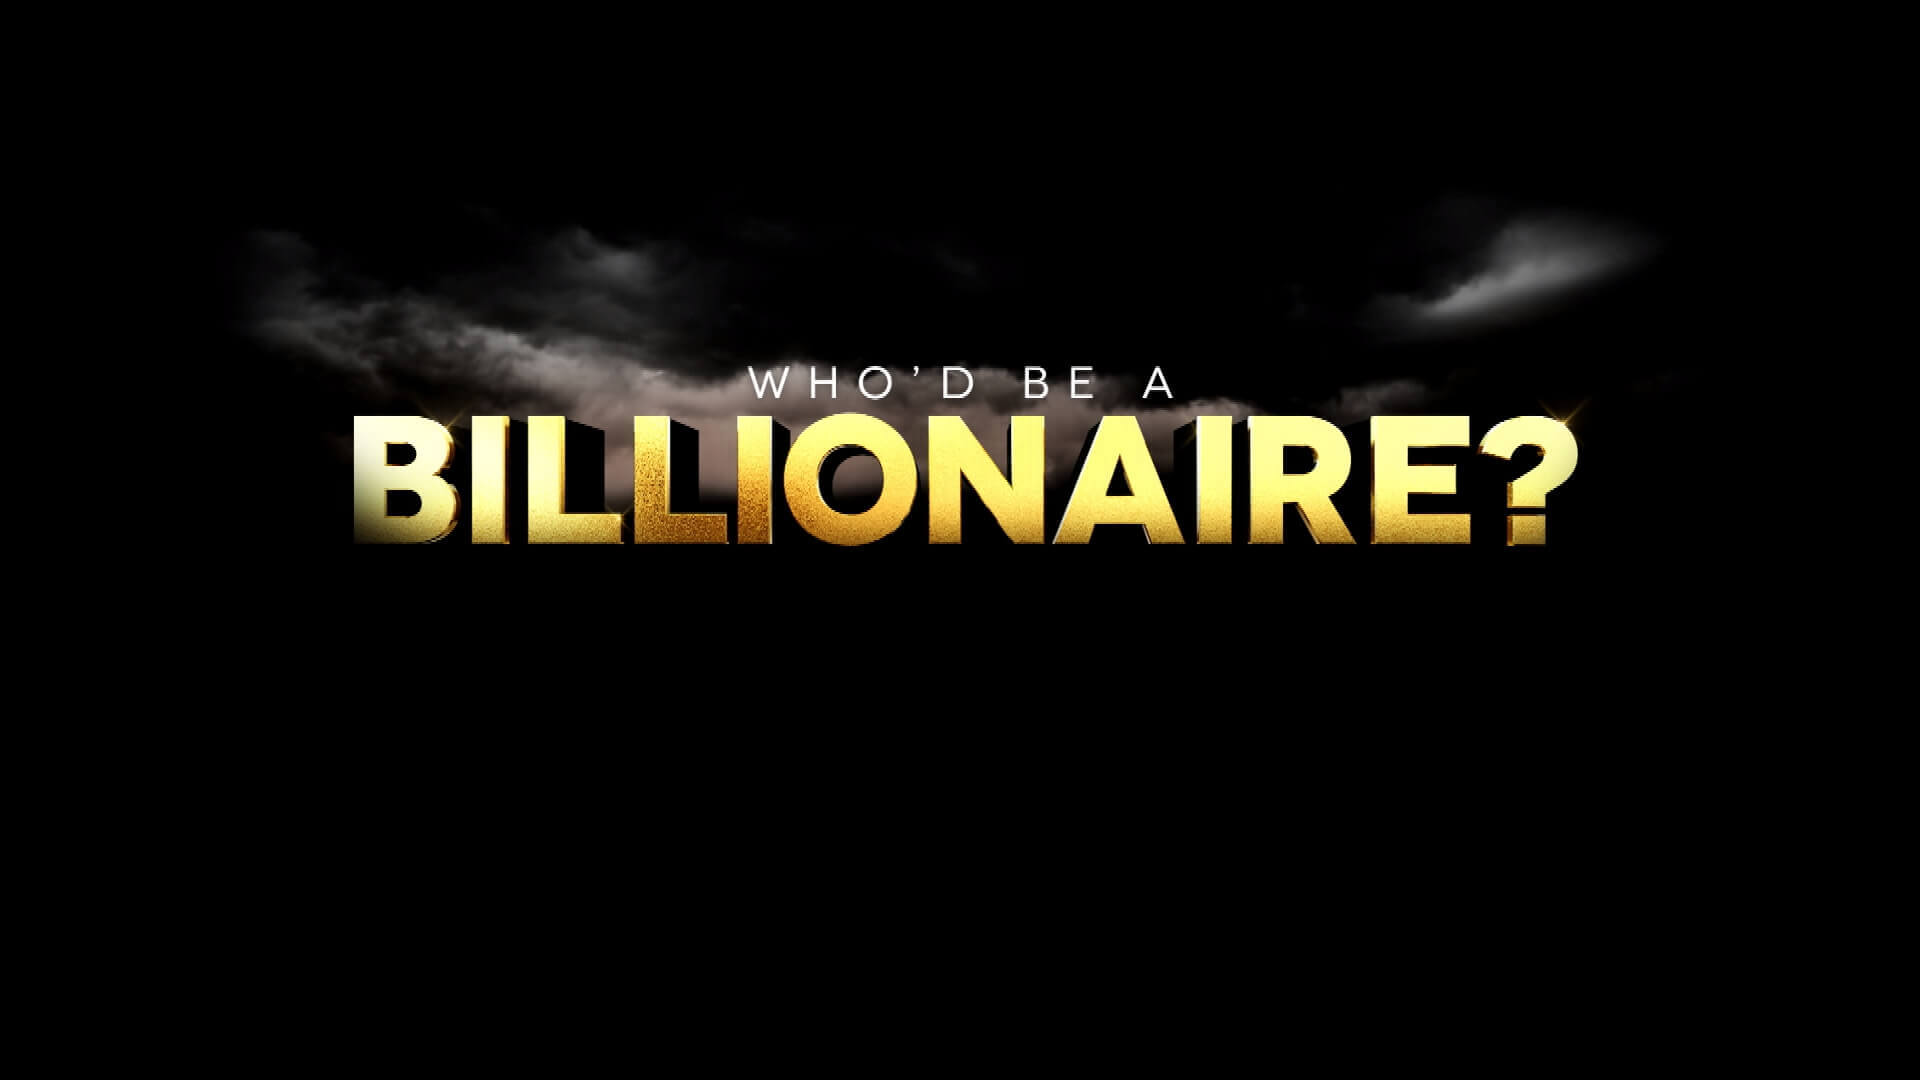 Synchronisation der TV Serie Who'd Be a Billionaire?